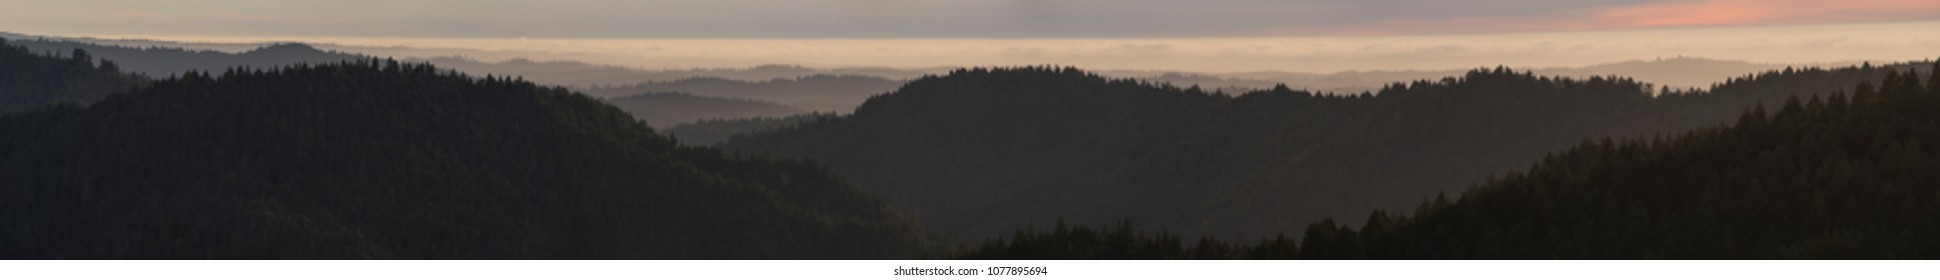 Panorama of serene forested landscape of California Coastal Range, Mendocino County, USA.